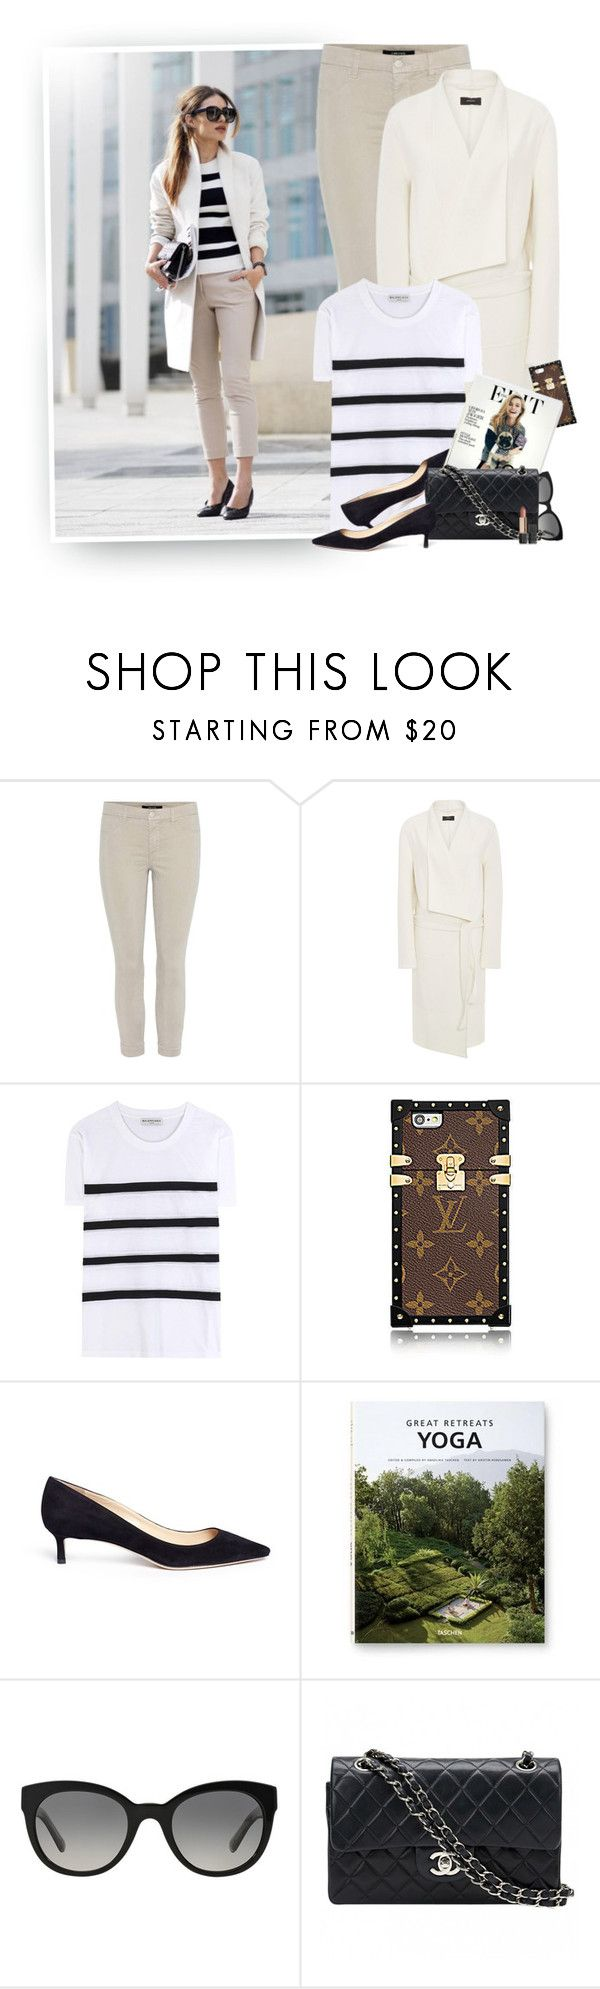 """""""Spring Clean"""" by hollowpoint-smile ❤ liked on Polyvore featuring J Brand, Joseph, Balenciaga, Jimmy Choo, Taschen, Burberry, Chanel and Estée Lauder"""